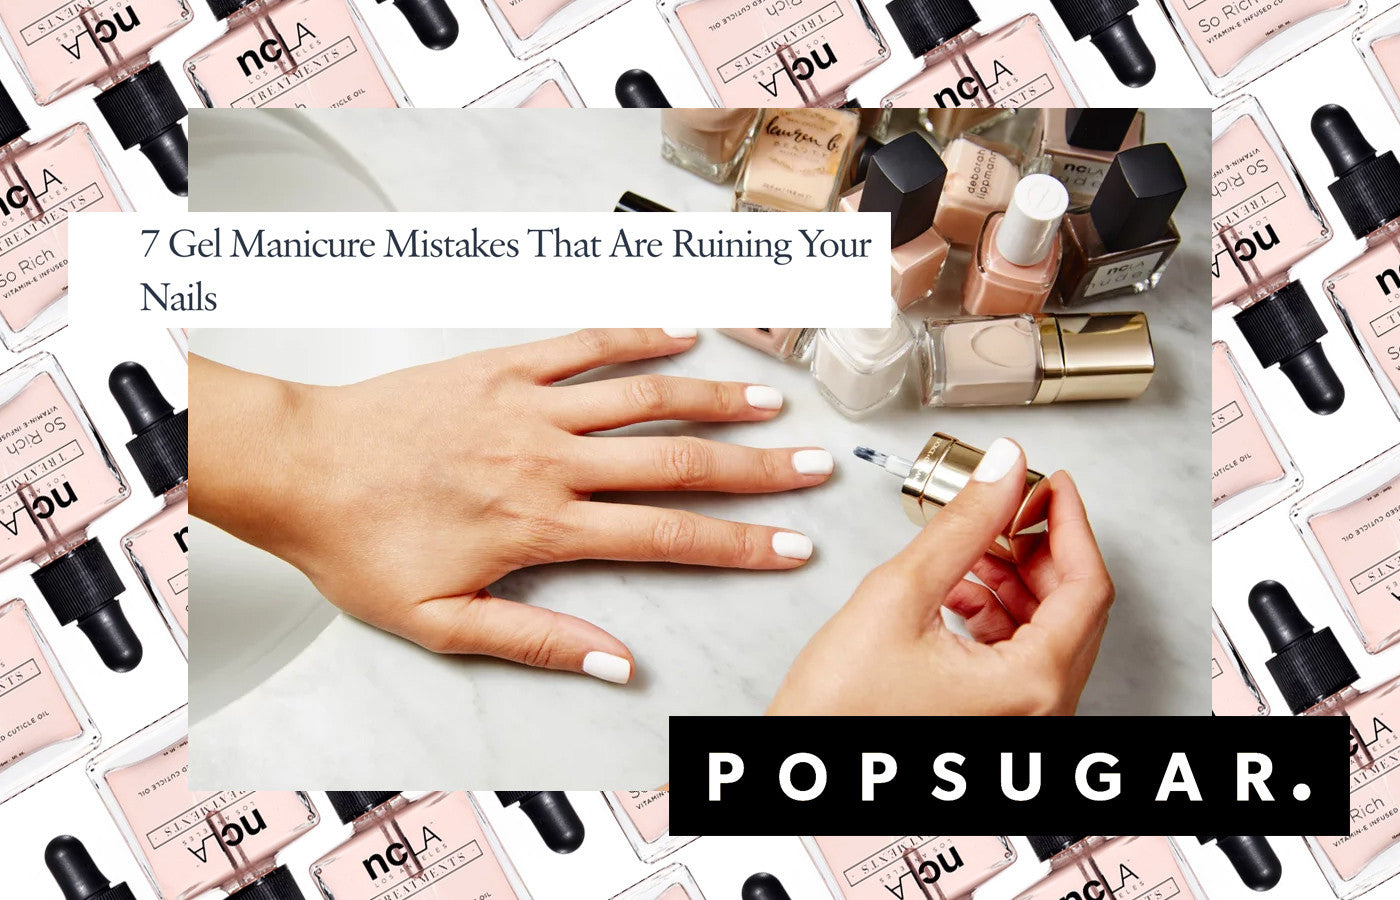 POPSUGAR: 7 Gel Manicure Mistakes That Are Ruining Your Nails